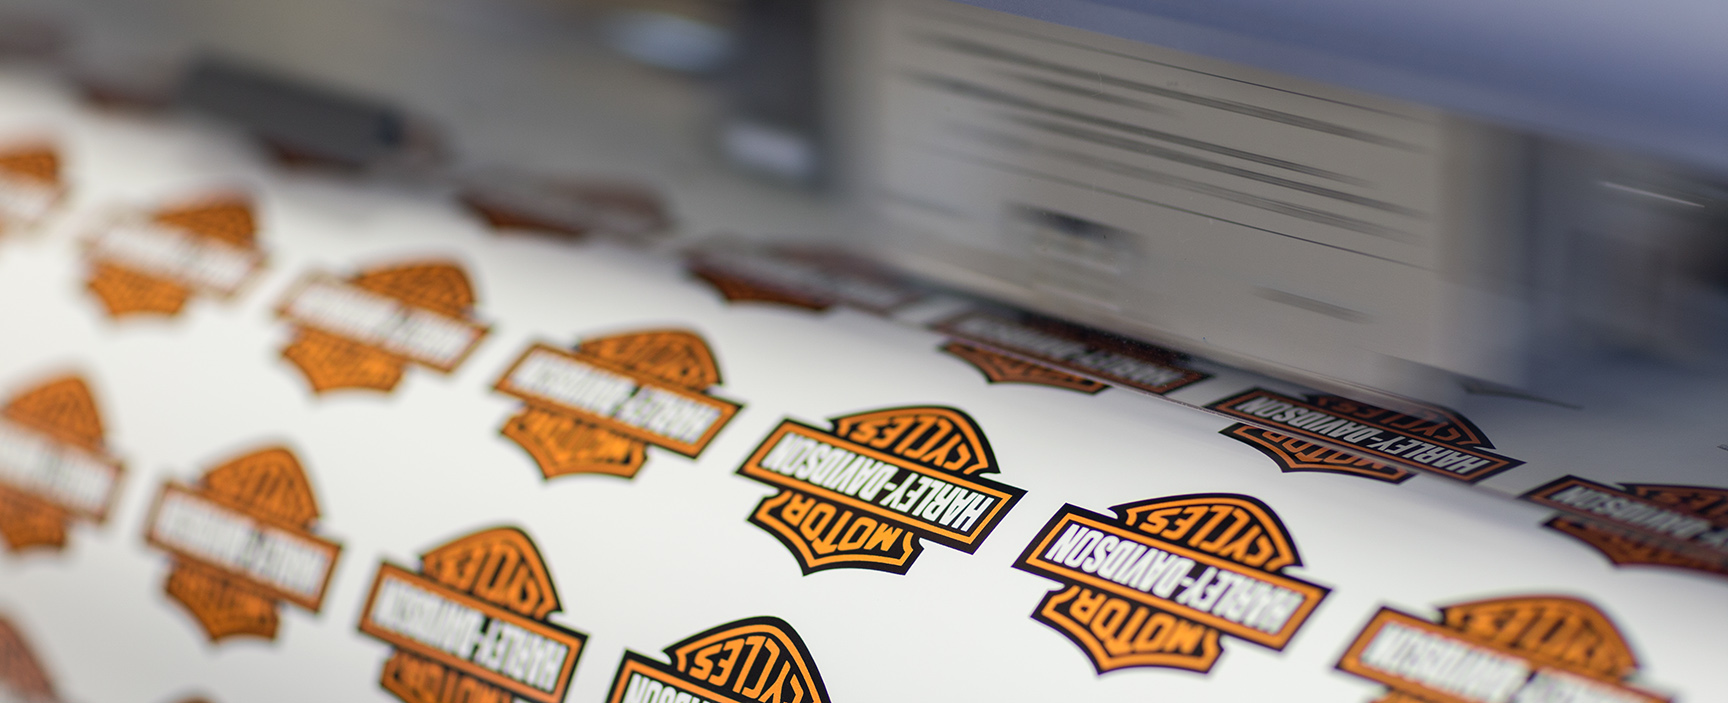 Motorbike stickers and labels